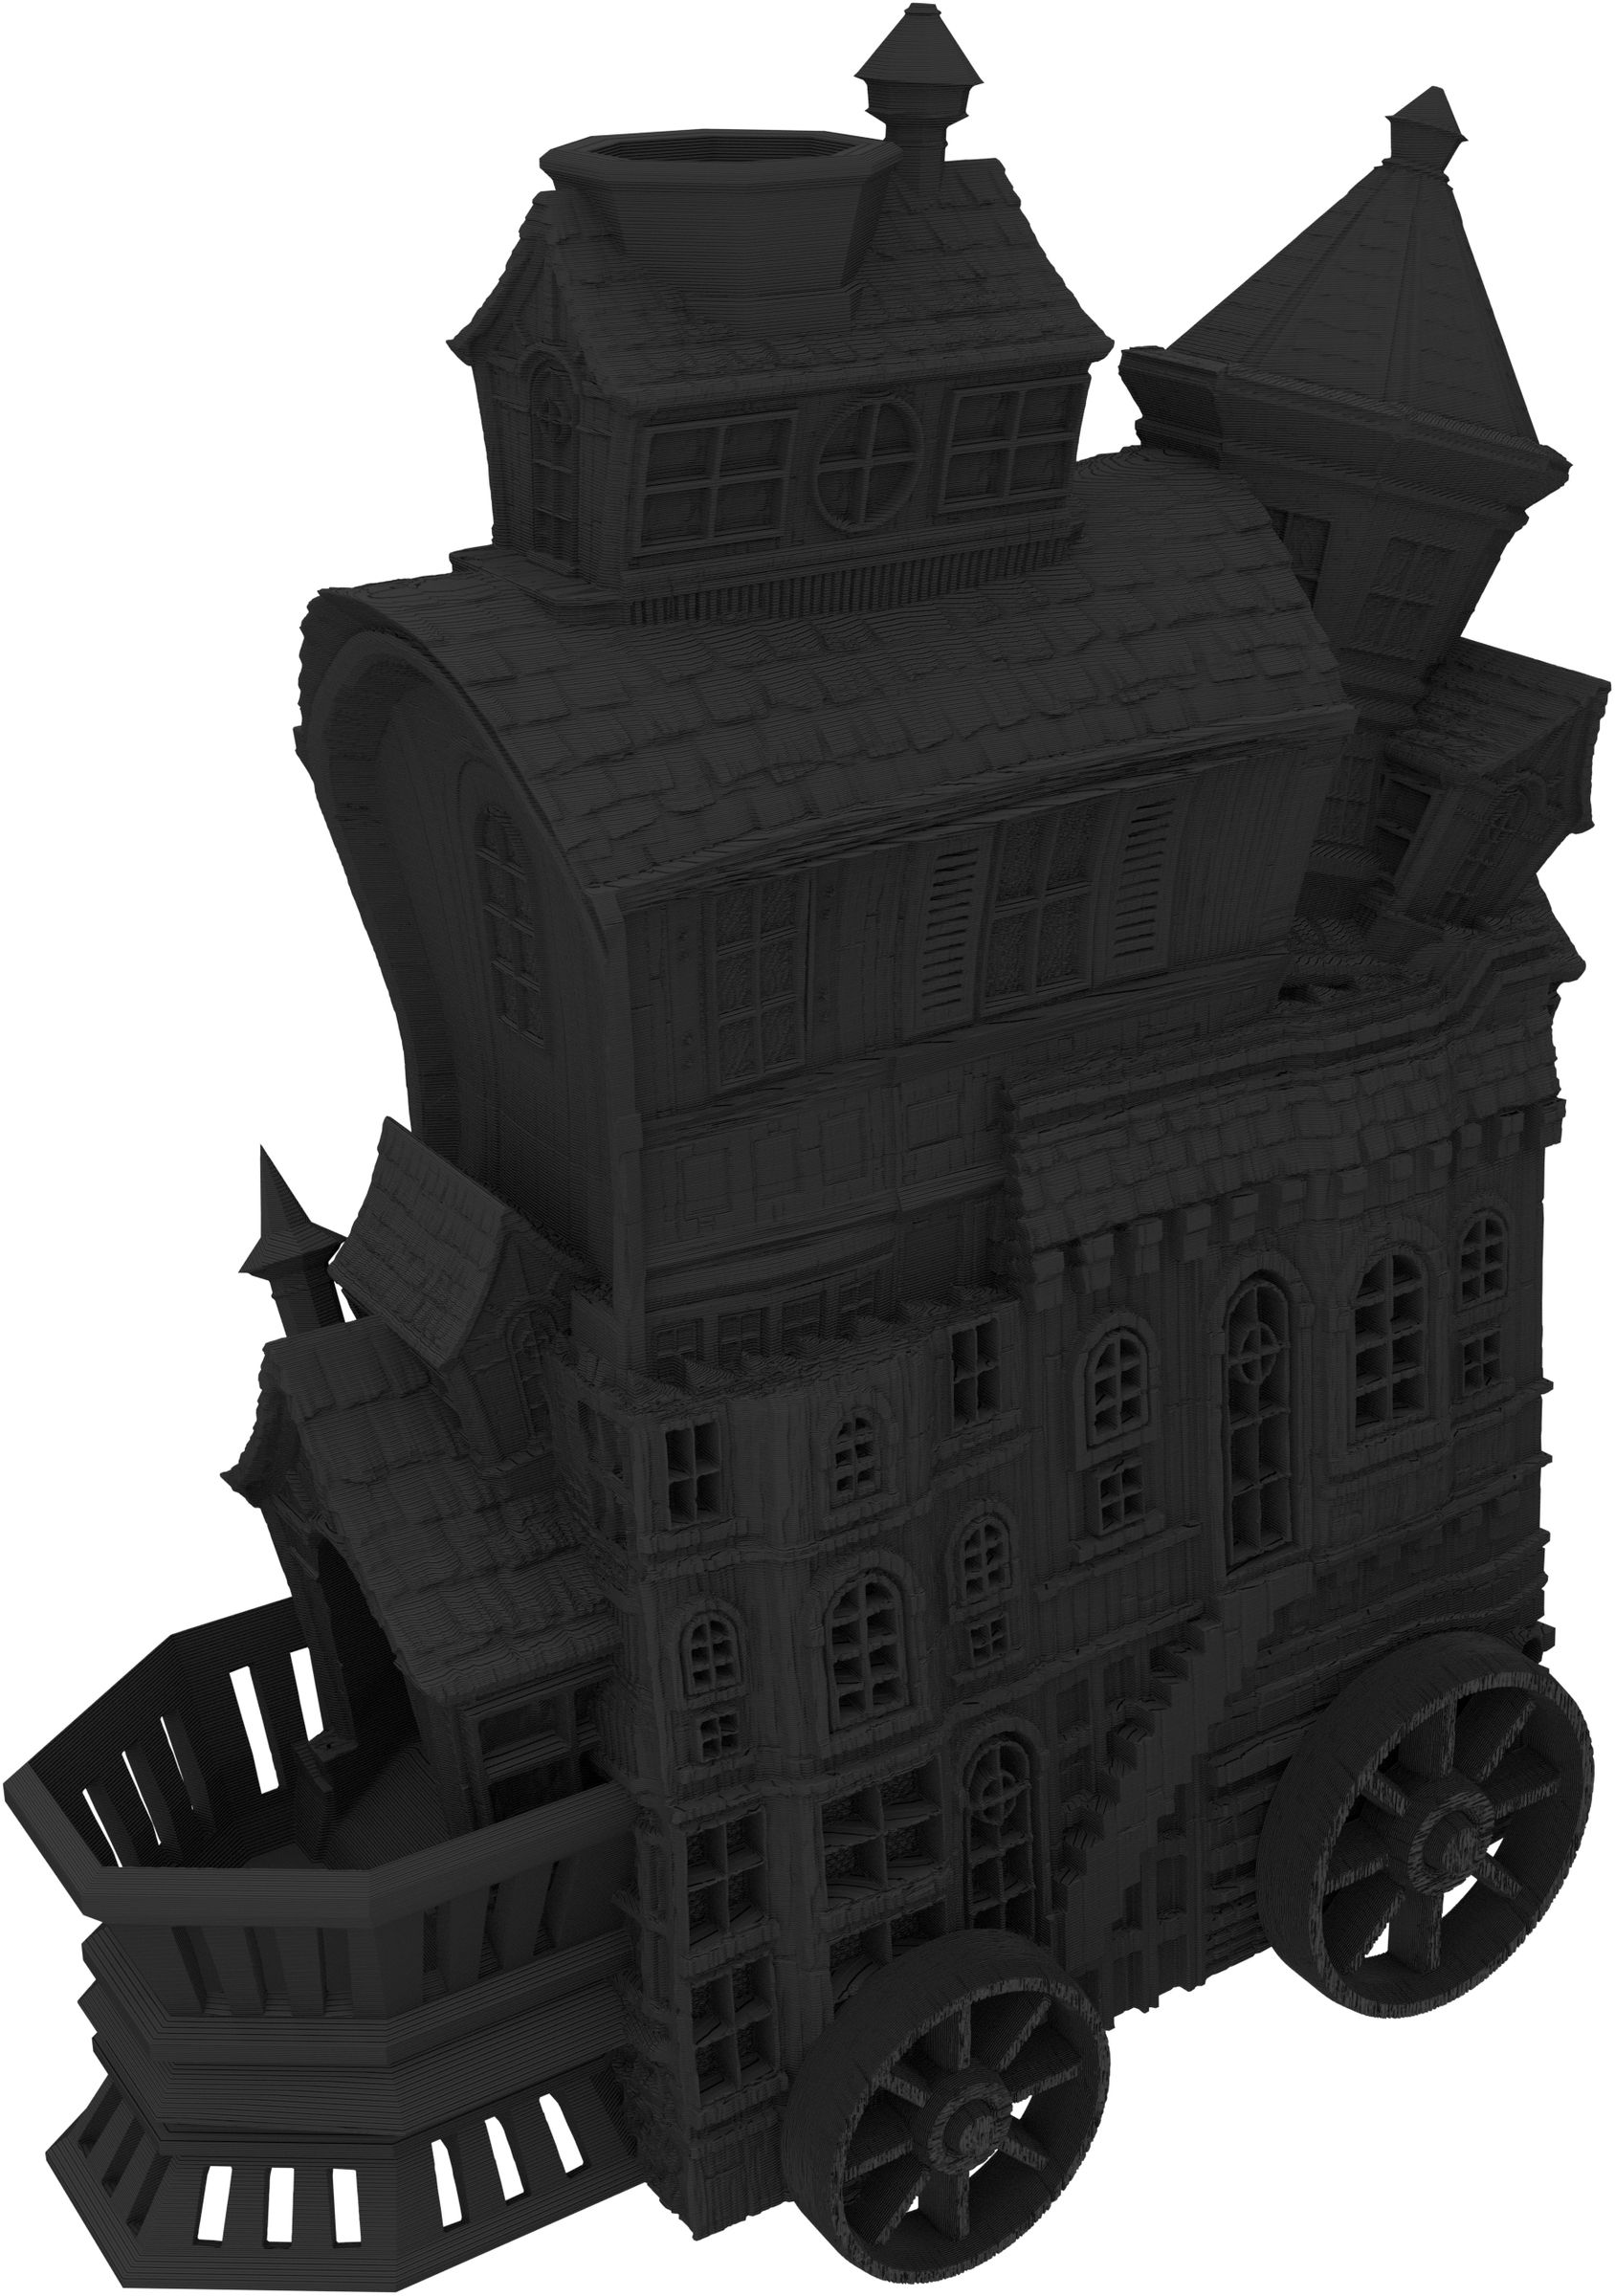 Fates End Dice Tower: Merchant